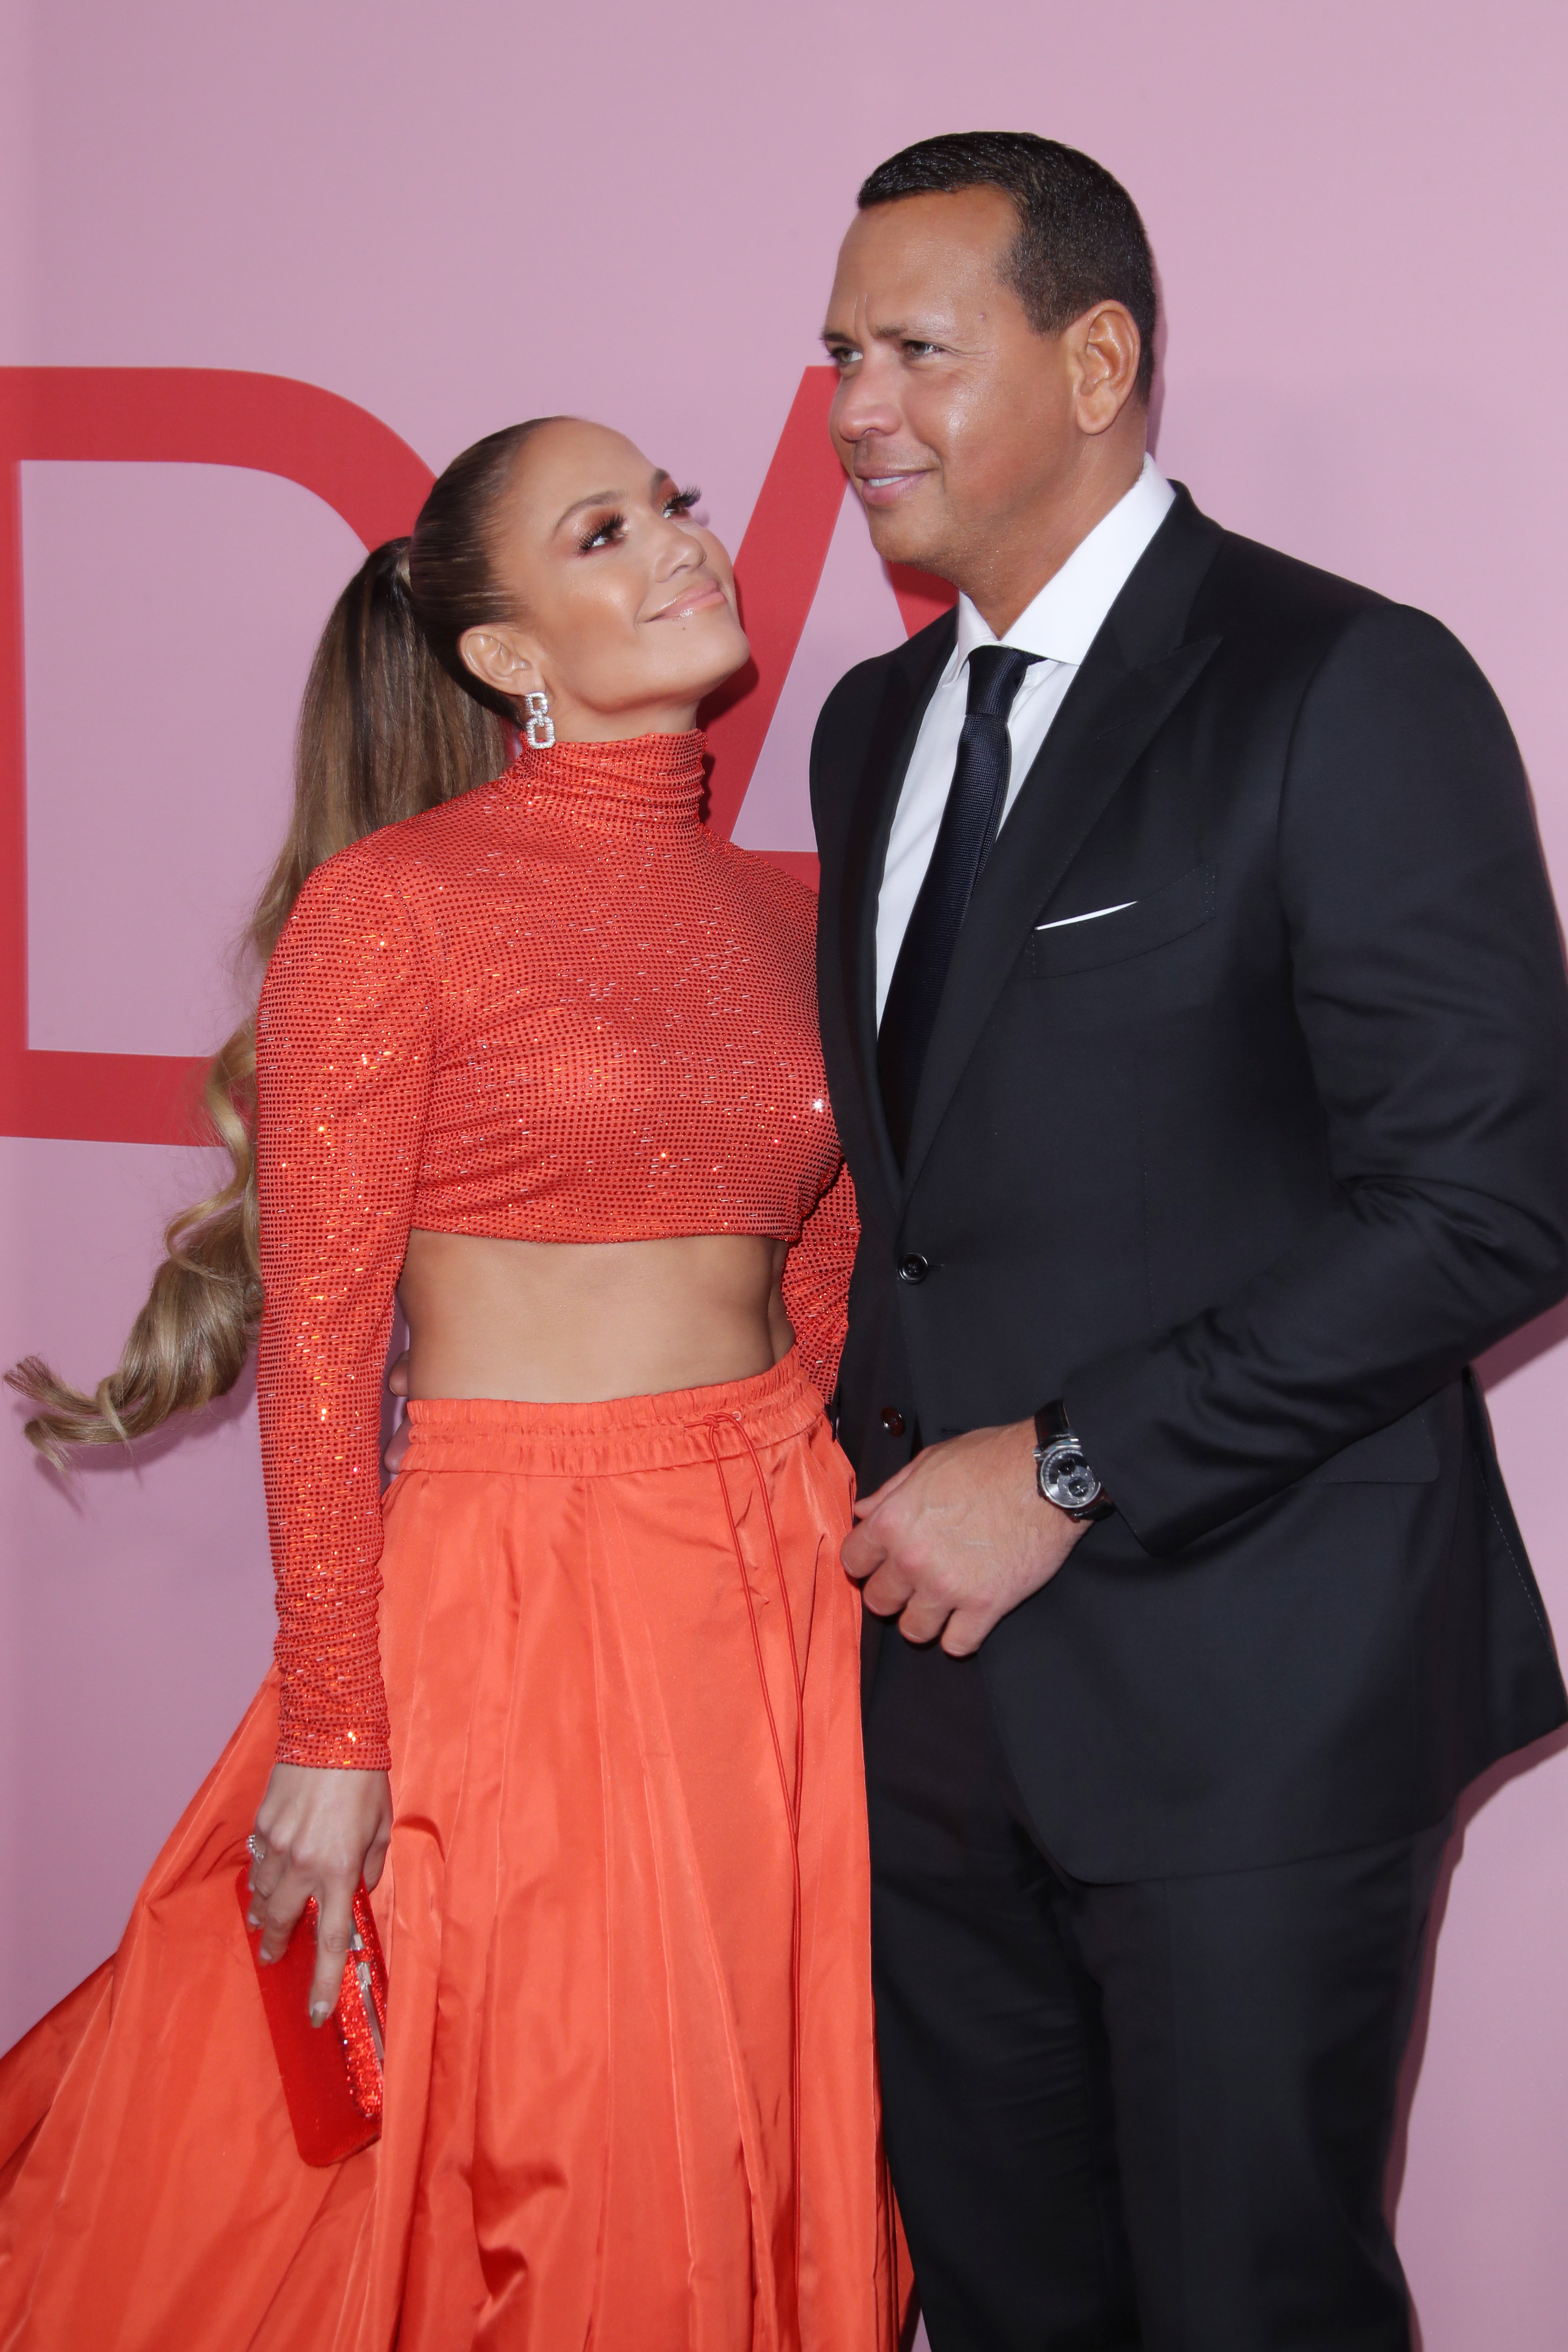 Jennifer Lopez Gushes Over Her Similarities to Fiancé Alex Rodriguez: 'We're Driven by Our Passions'